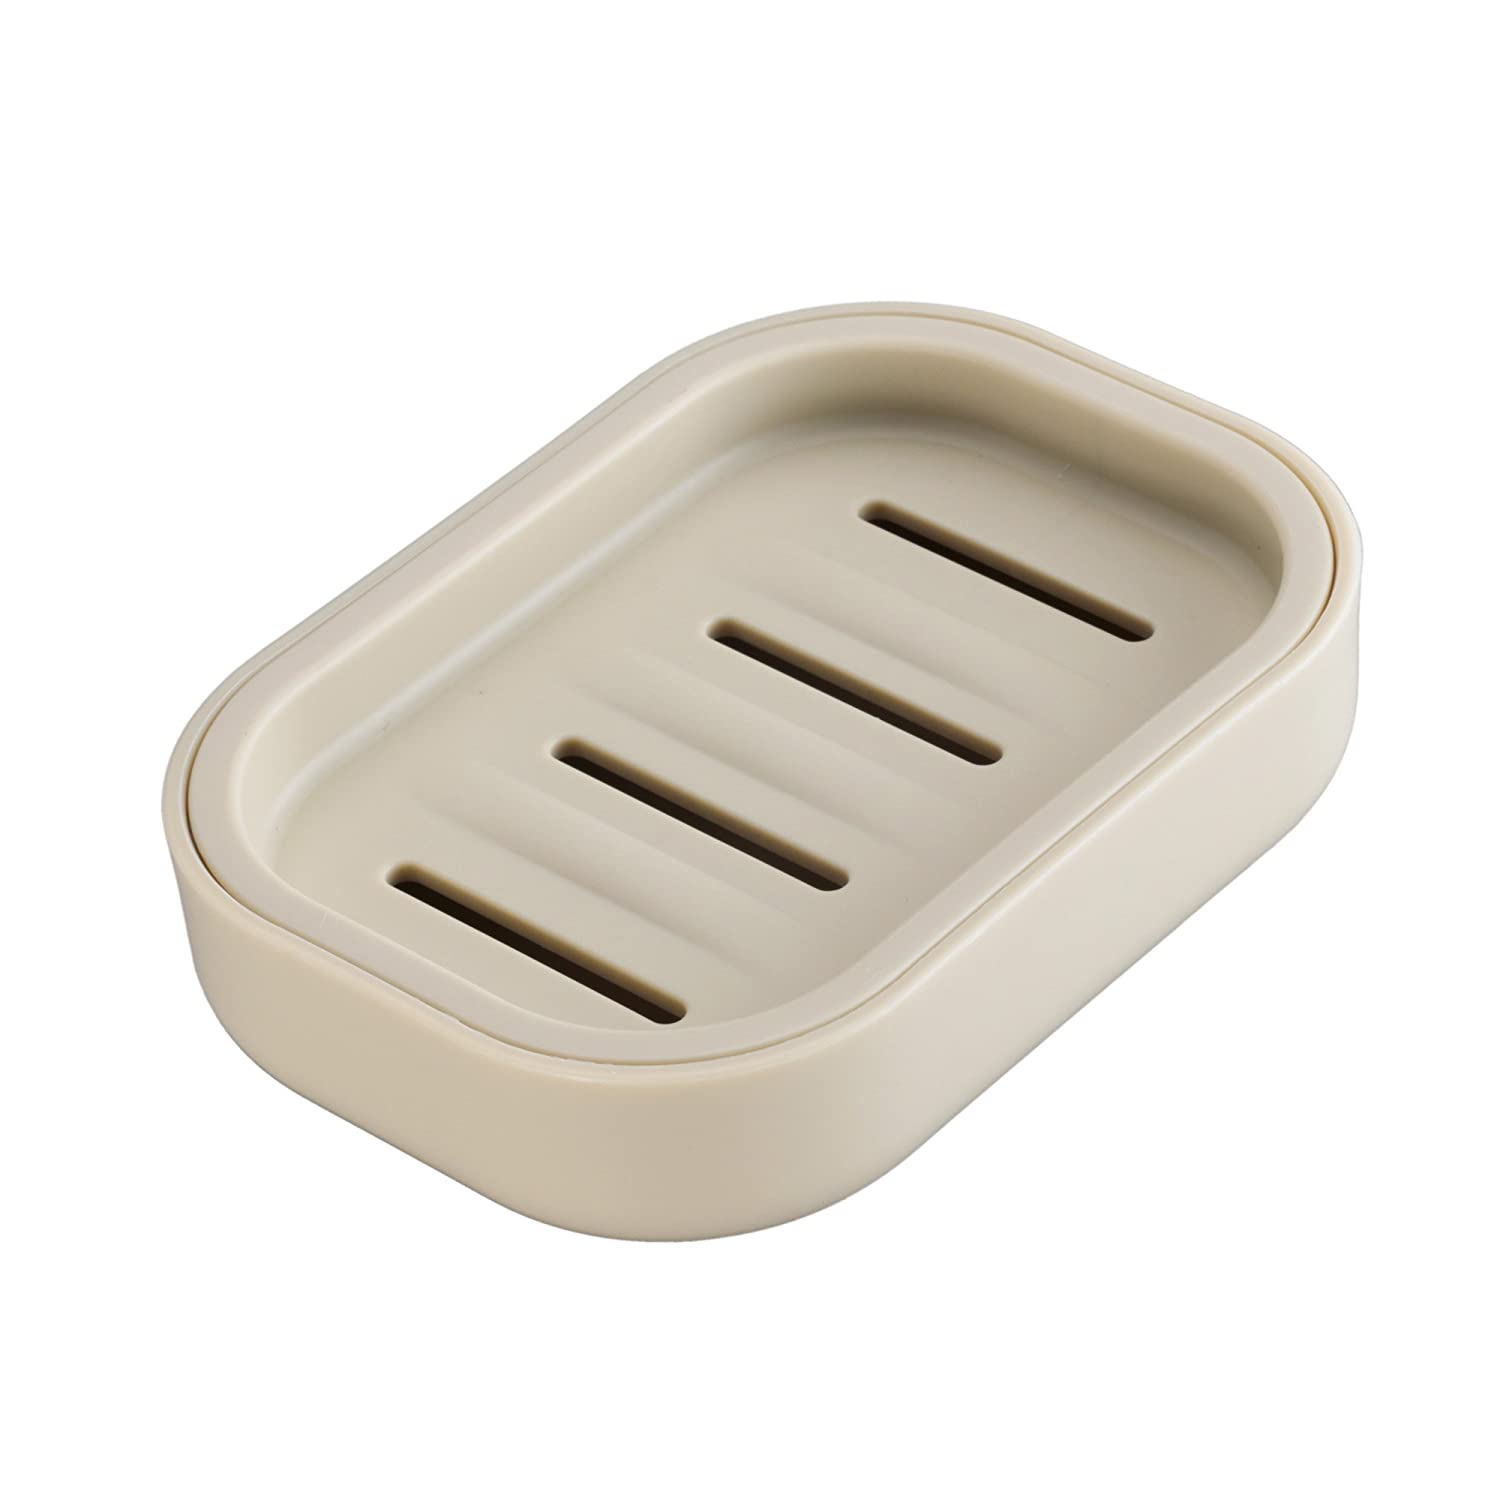 UVIVIU PP Plastic Box Dish, Container, Keeps Soap Dry,Easy Cleaning,Drain,White a-1137